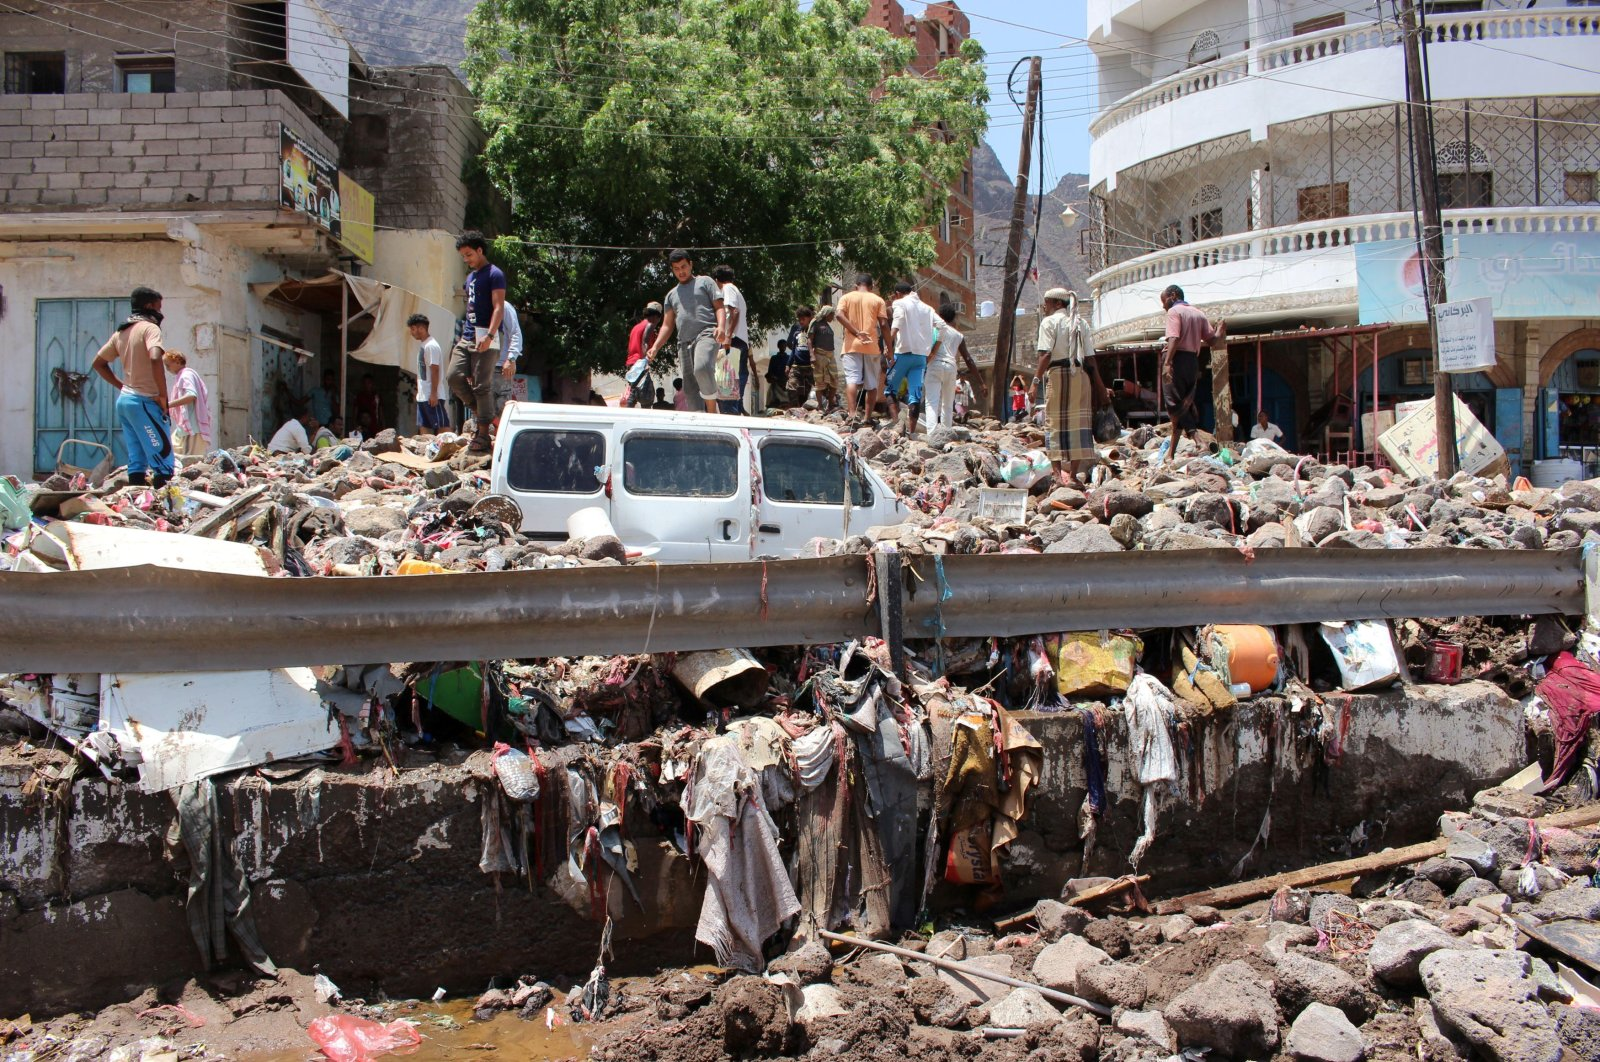 People inspect damage caused by floods on a street in Aden, Yemen, April 22, 2020. (Reuters Photo)